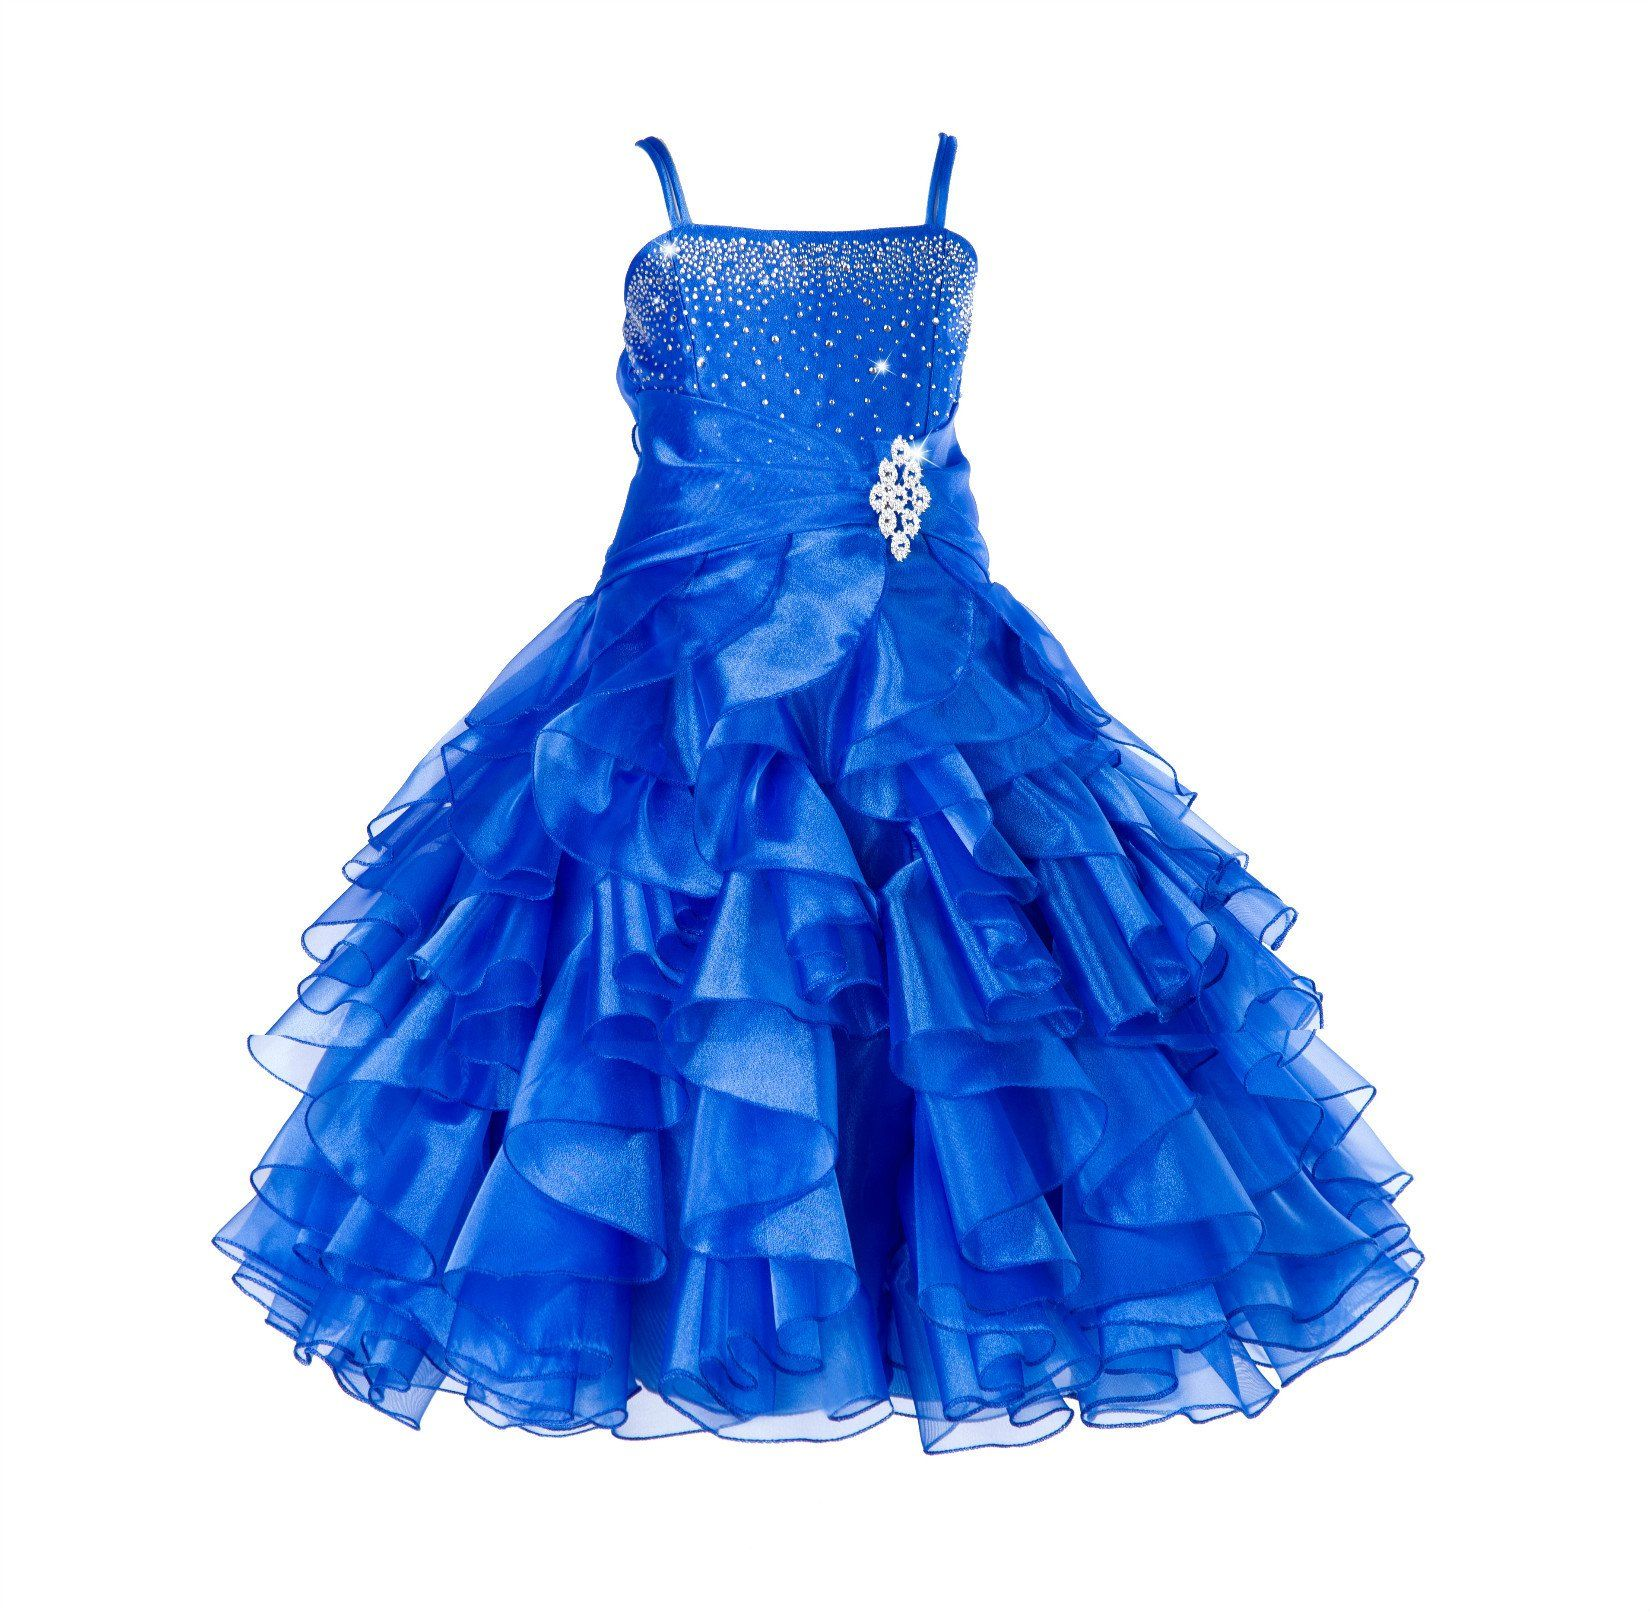 6c488e7c5 Elegant Rhinestone Organza Pleated Ruffled Beauty Pageant Special Occasions  Flower Girl Dress 164s